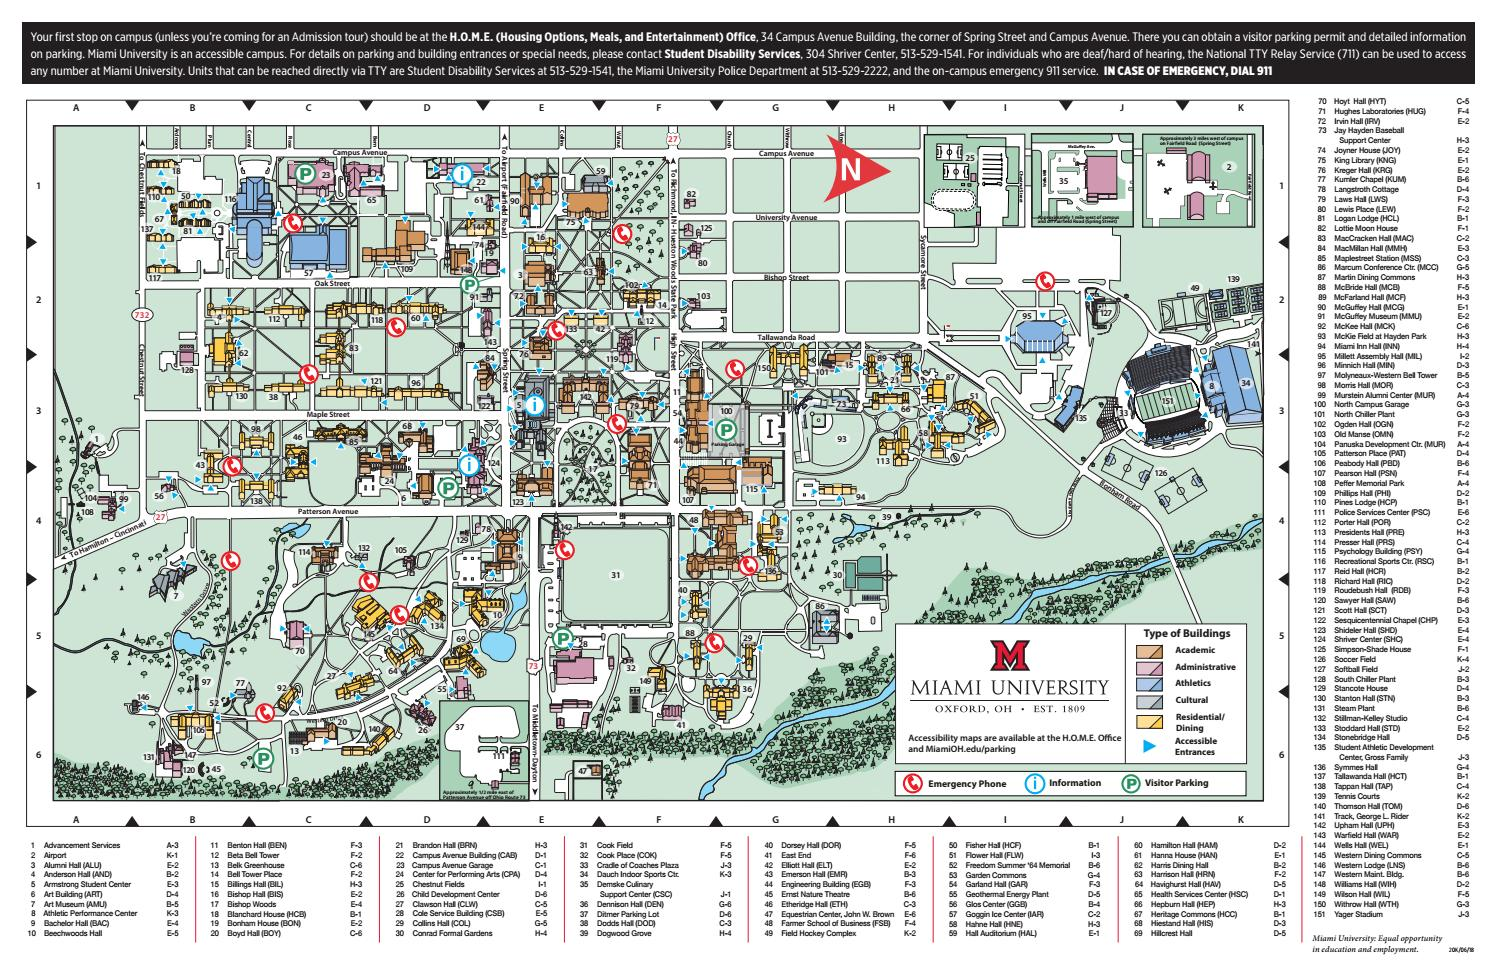 miami hamilton campus map Miami University Campus Map By Splice Ensemble Issuu miami hamilton campus map